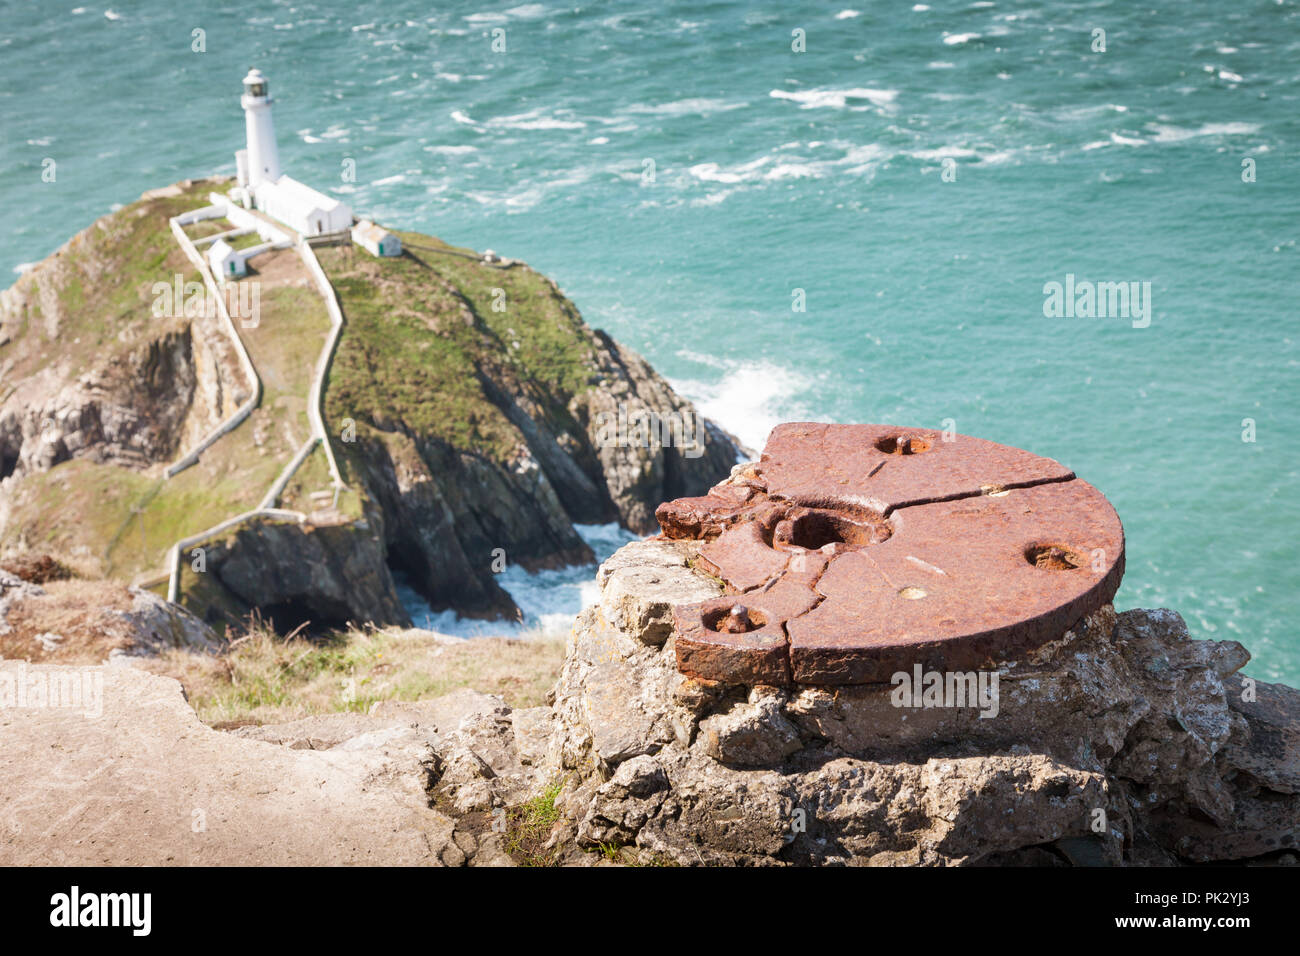 Iron or steel spigot mount for a gun, near South Stack lighthouse, Anglesey, Wales UK - Stock Image